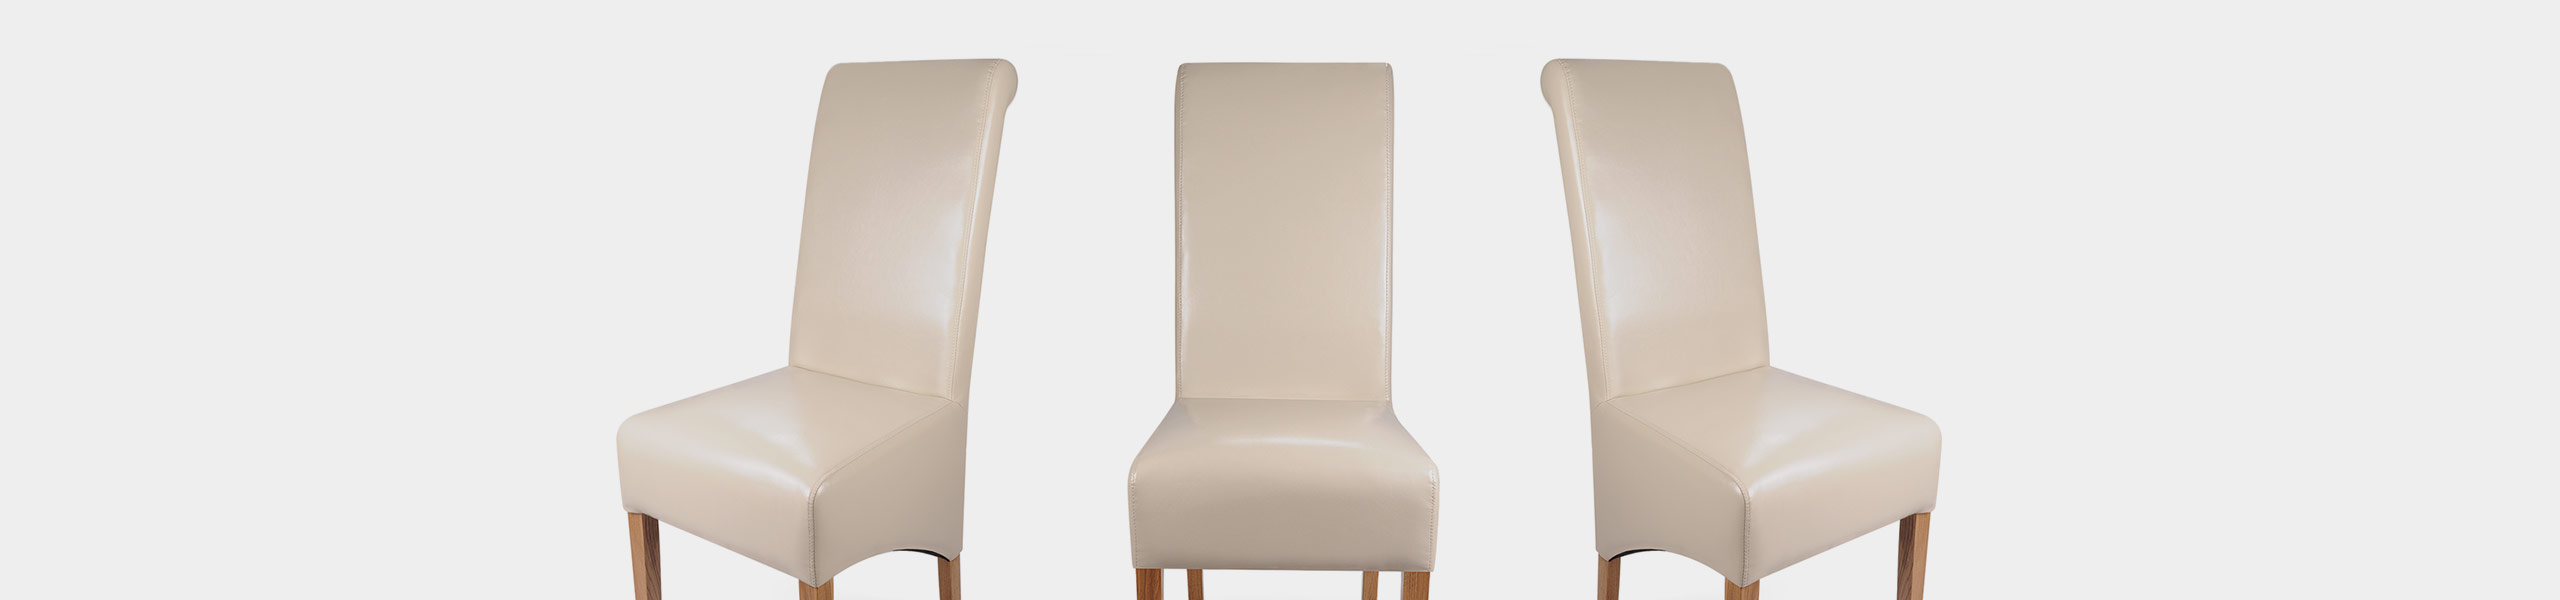 Krista Dining Chair Cream Leather Video Banner